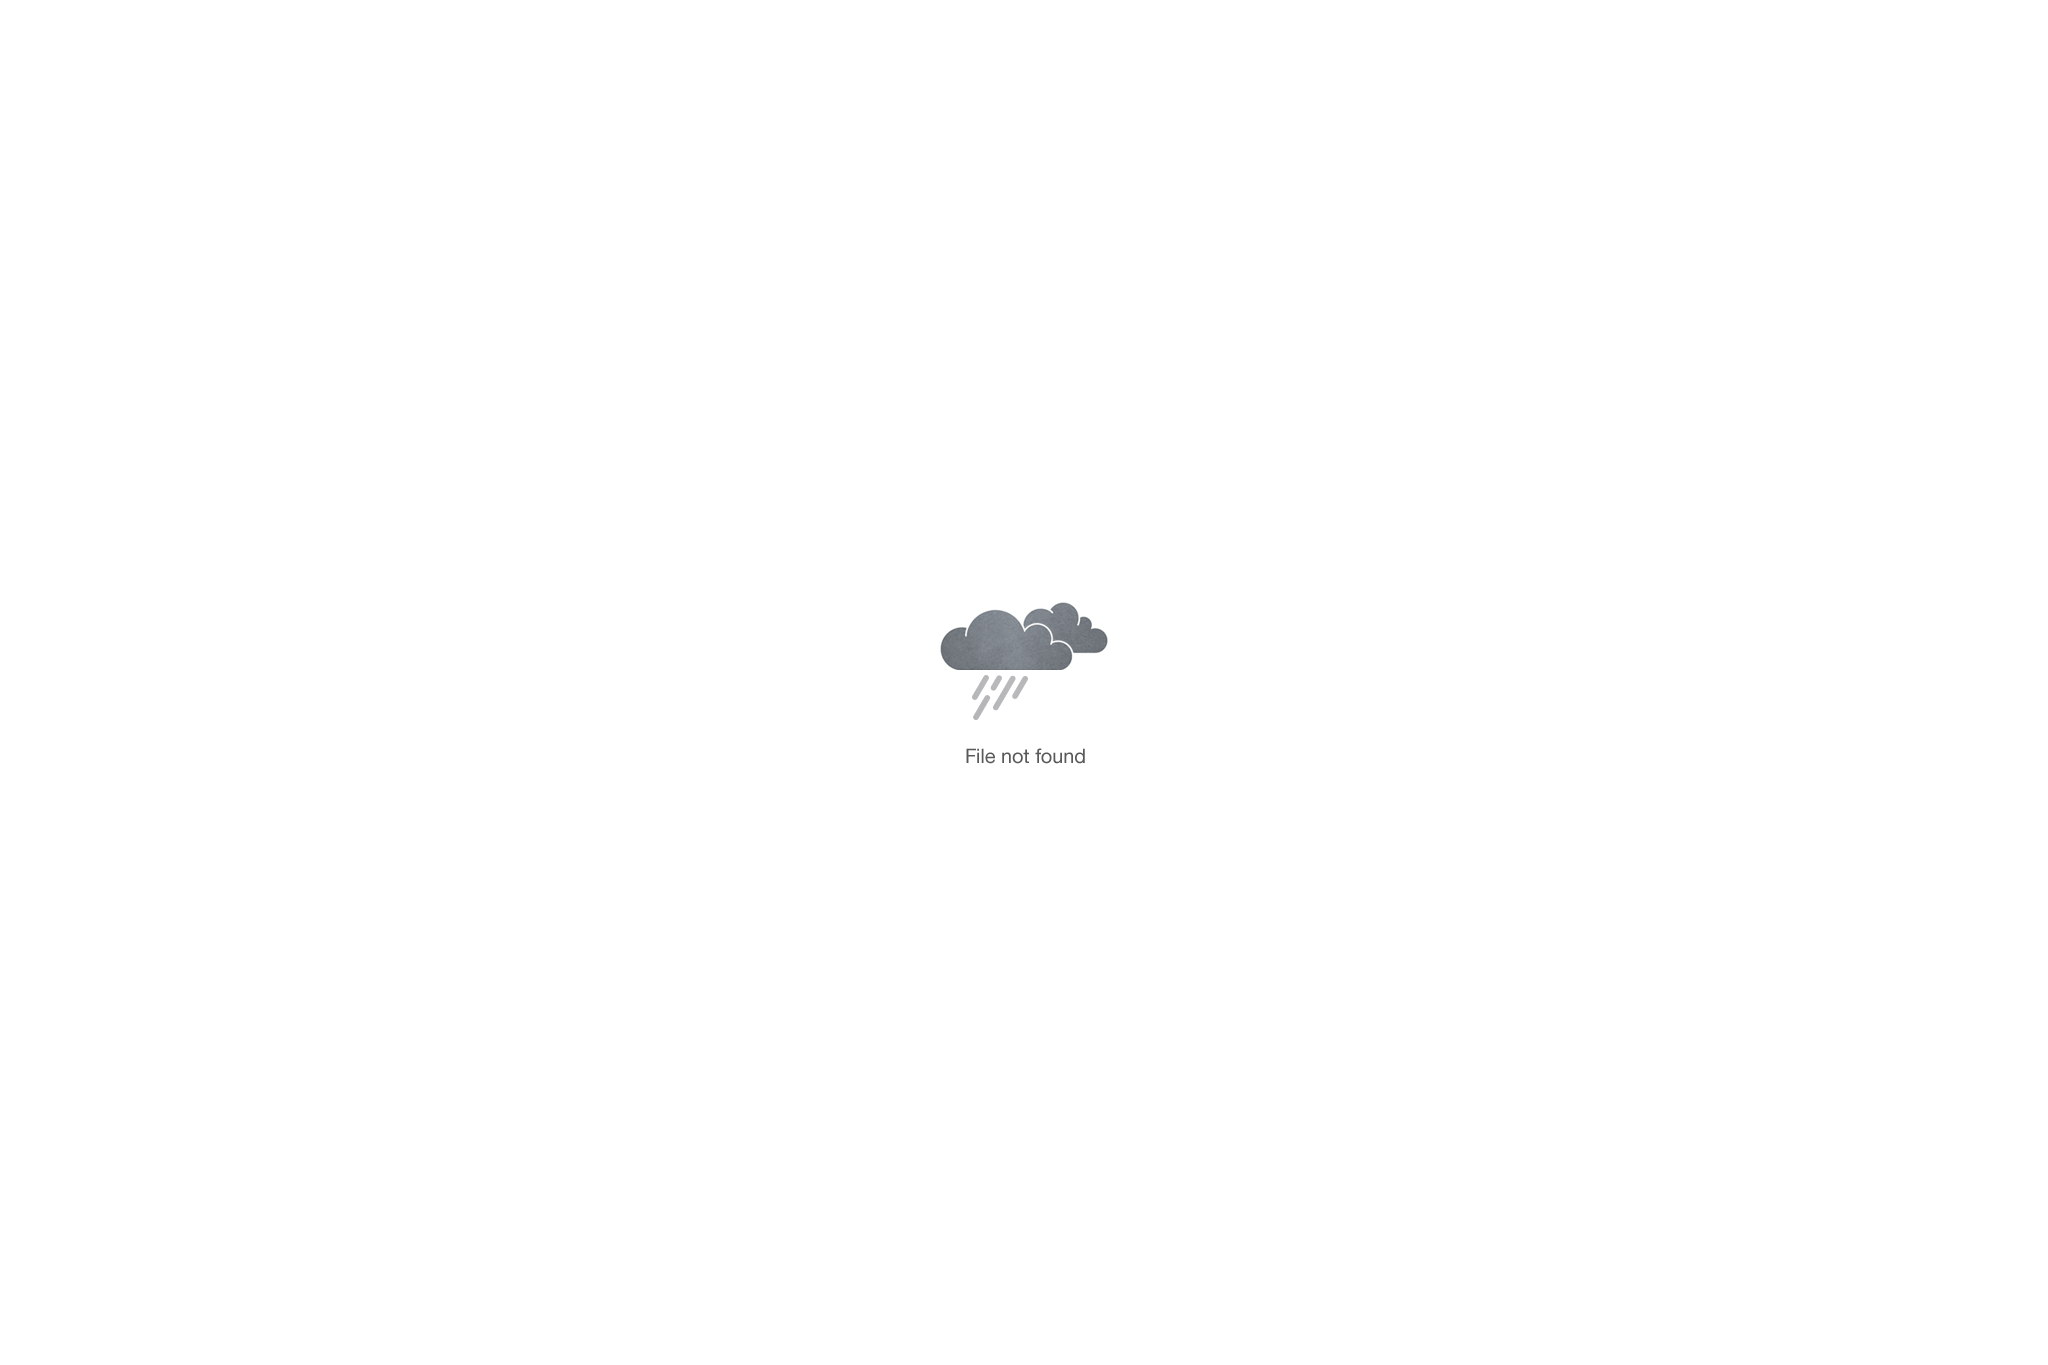 anna-charbonnel-Rugby-Sponsorise-me-image-2